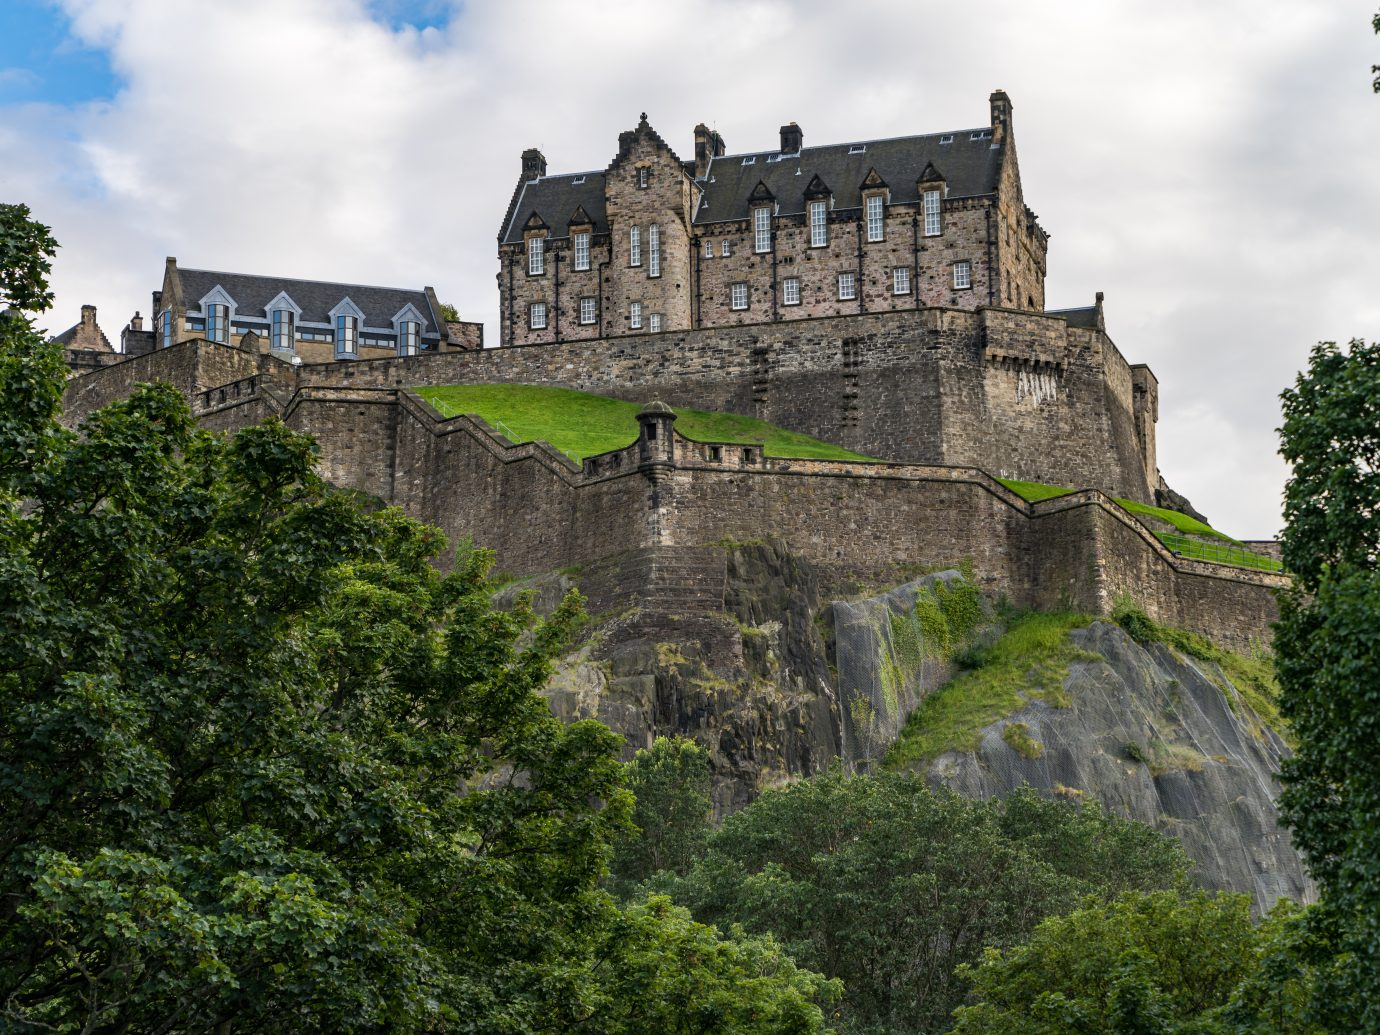 Scenic view of Edinburgh Castle on Castle rock, Edinburgh, Scotland